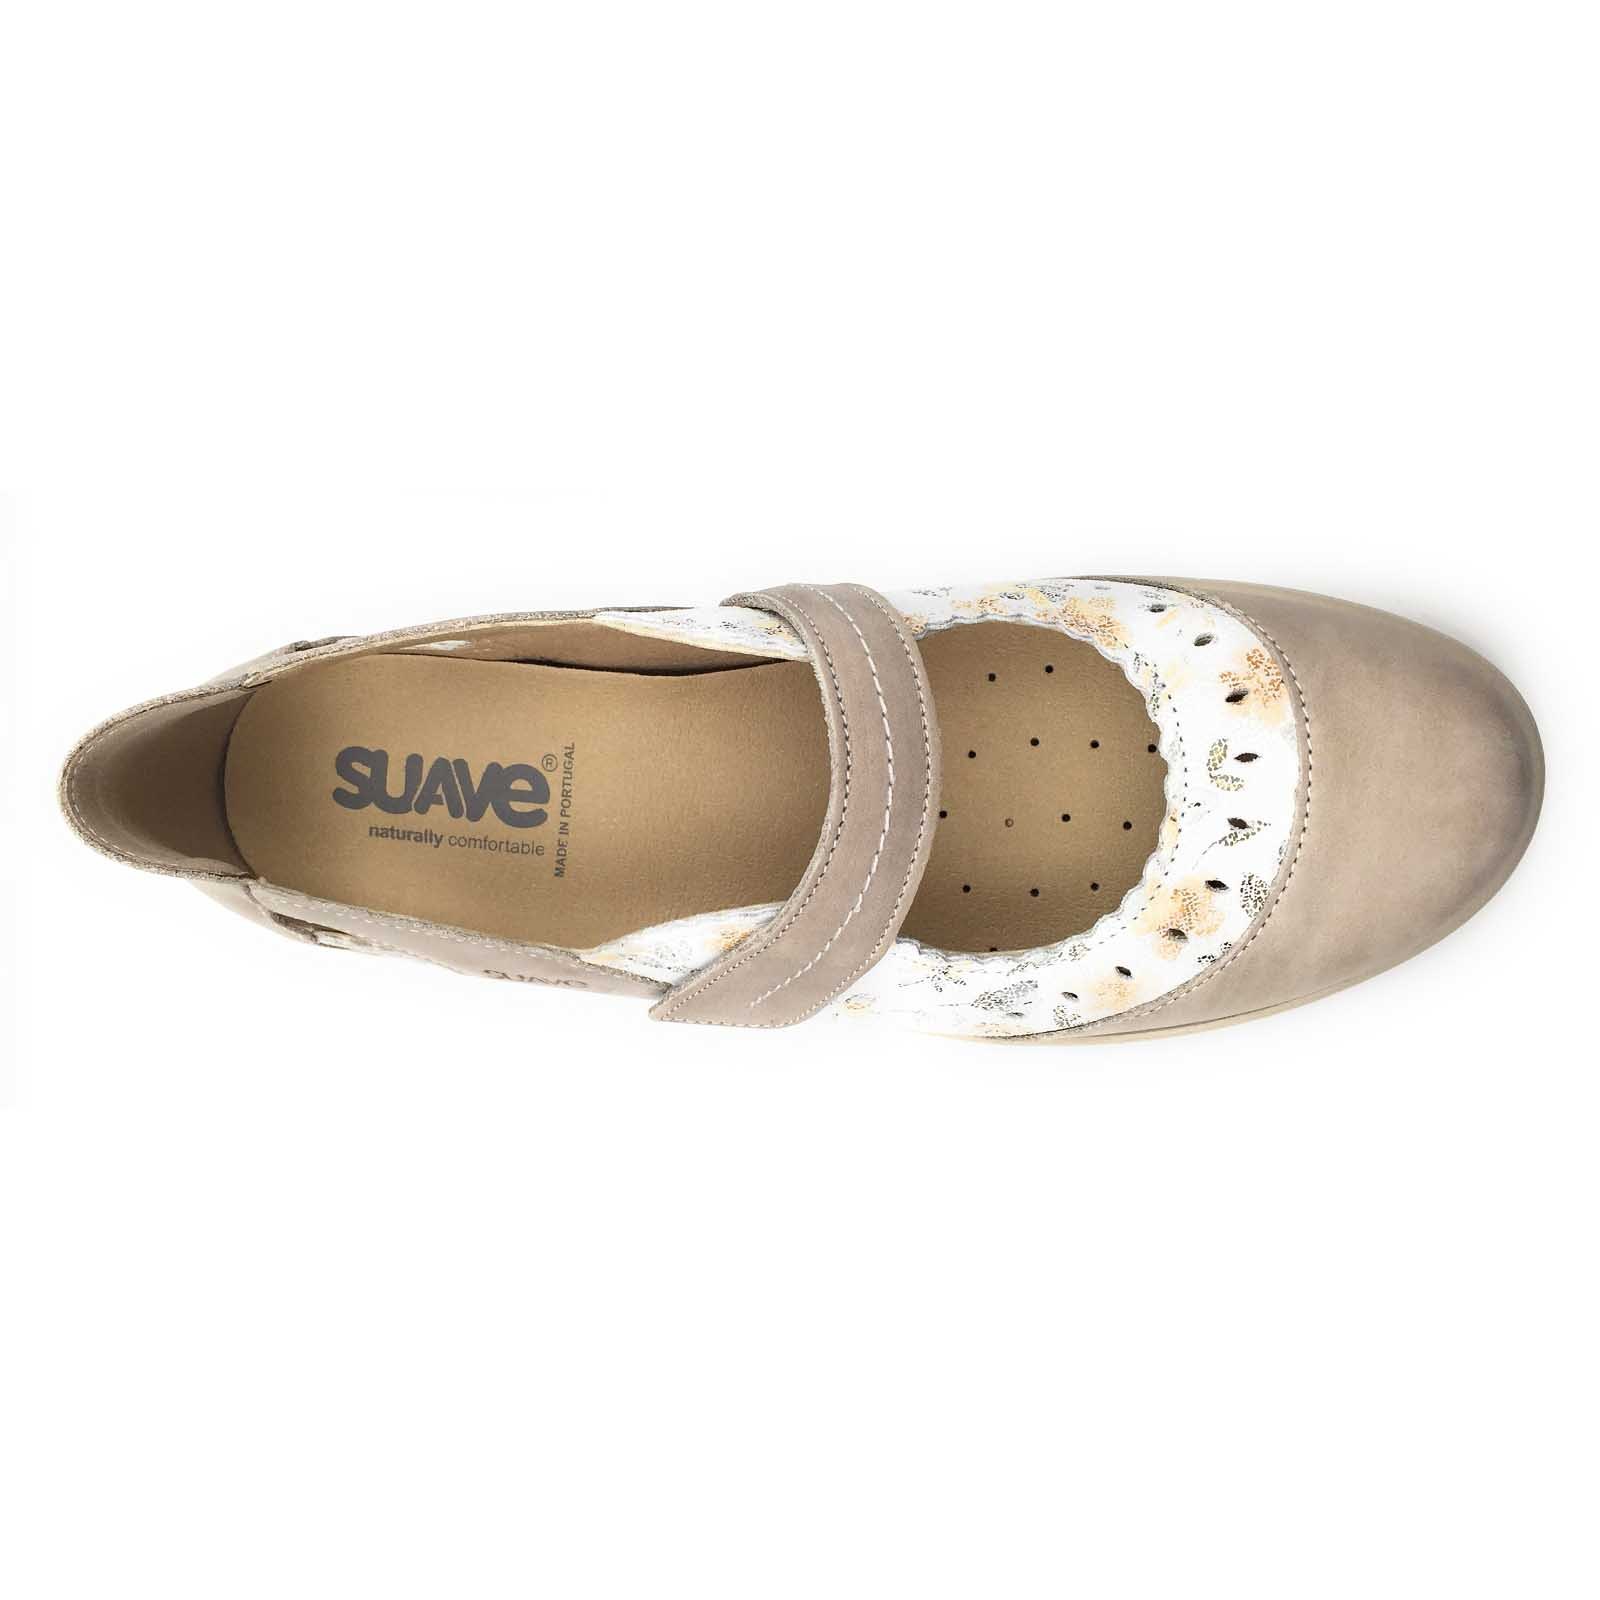 Suave mary janes 6640ms beige8061601_5